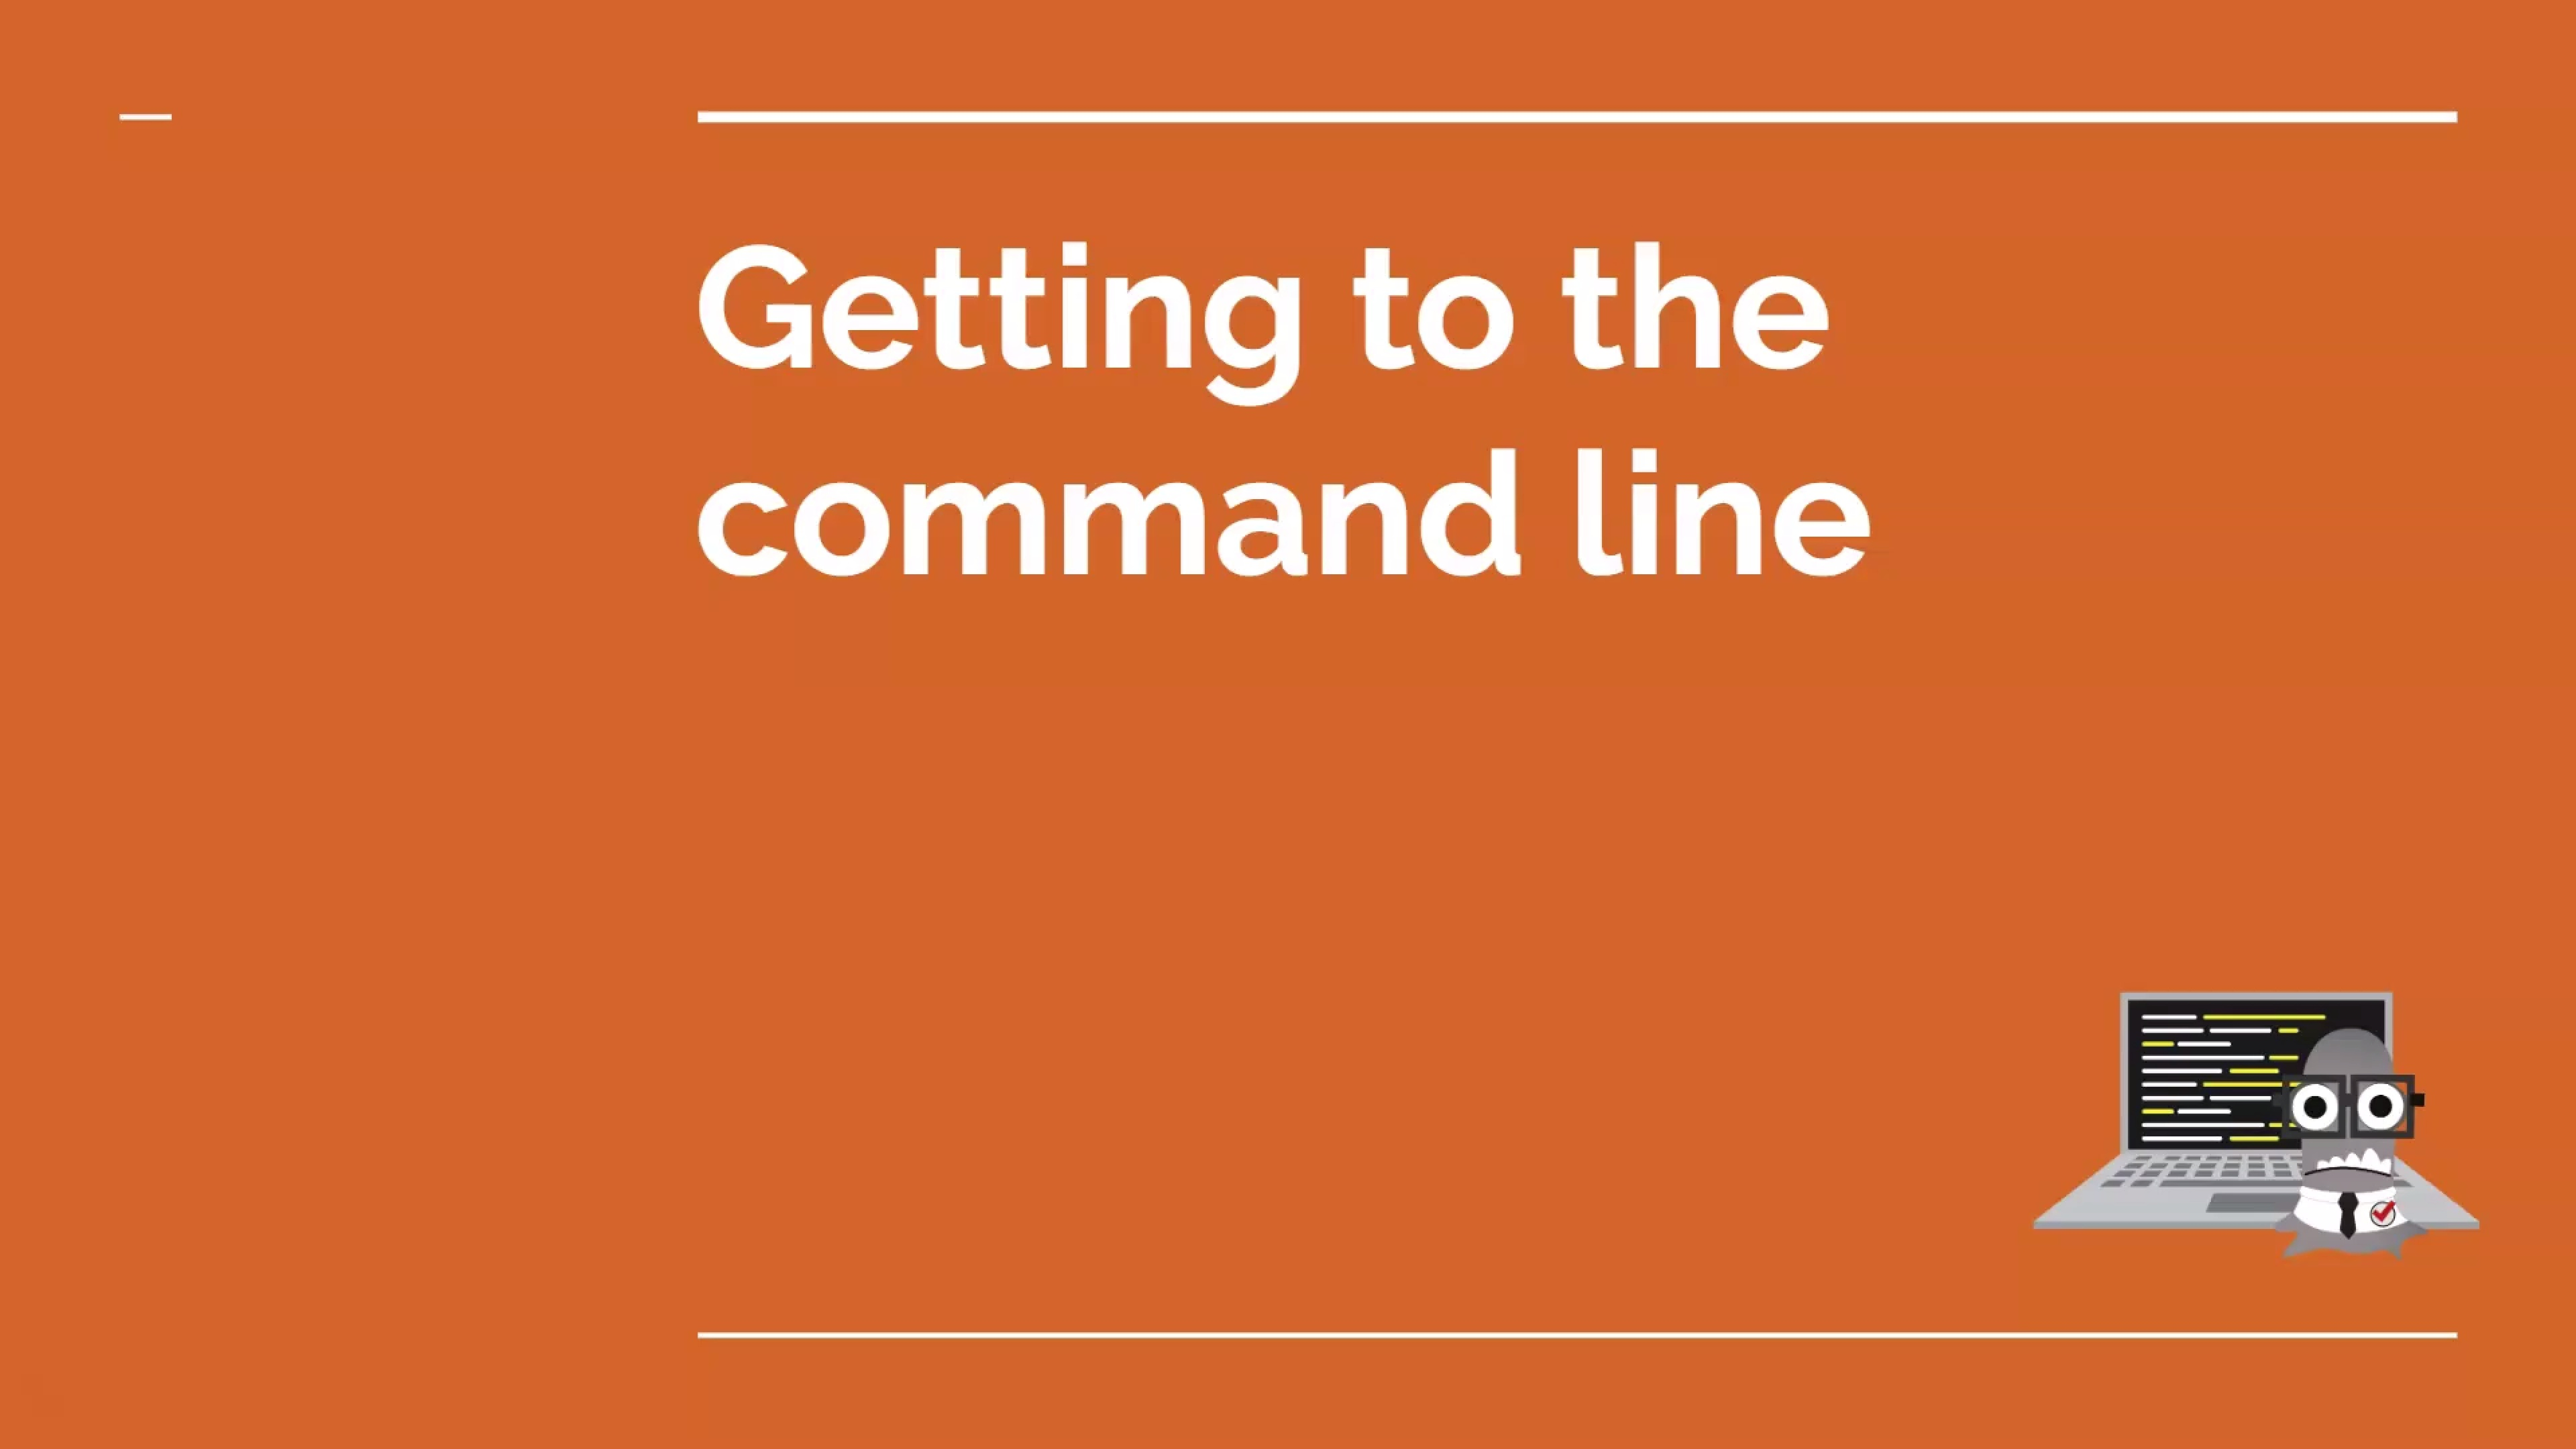 Getting to the Command Line